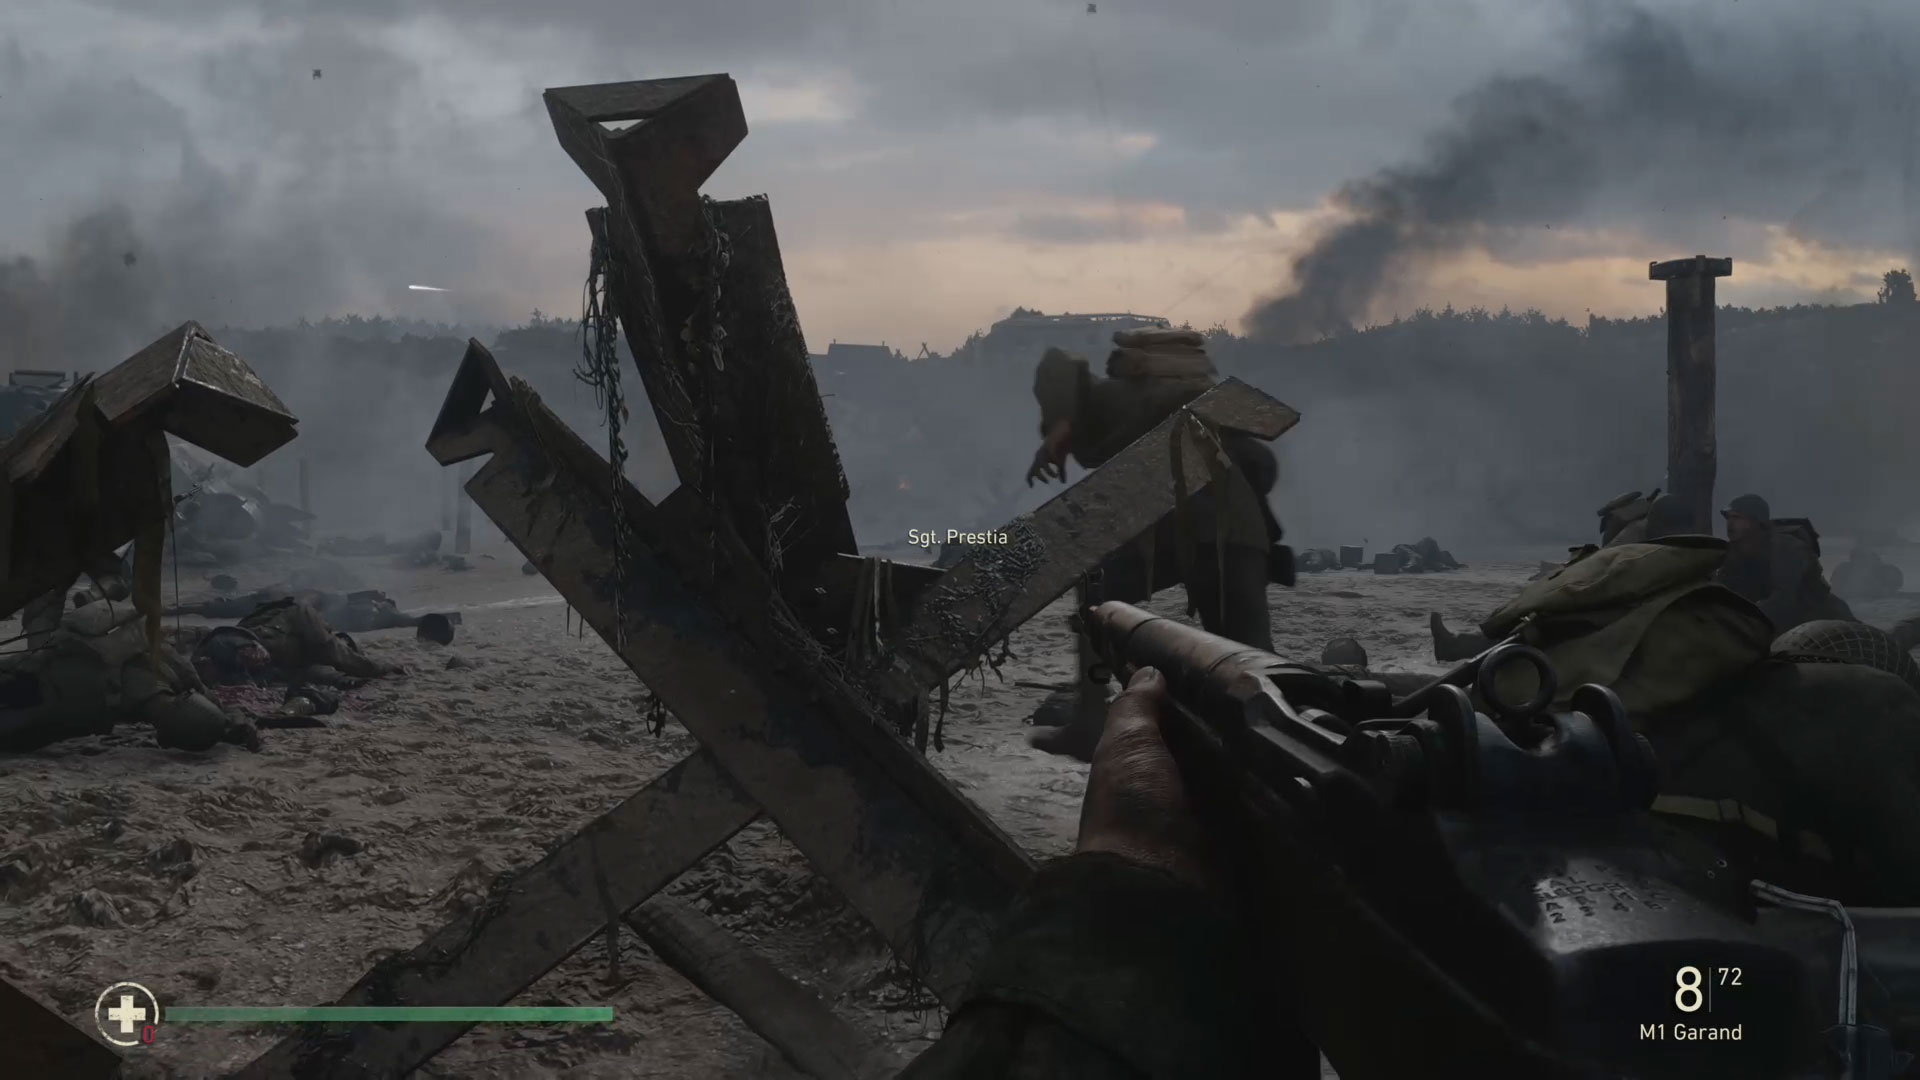 Review: Call of Duty: World War II (PS4, Xbox One, Windows)